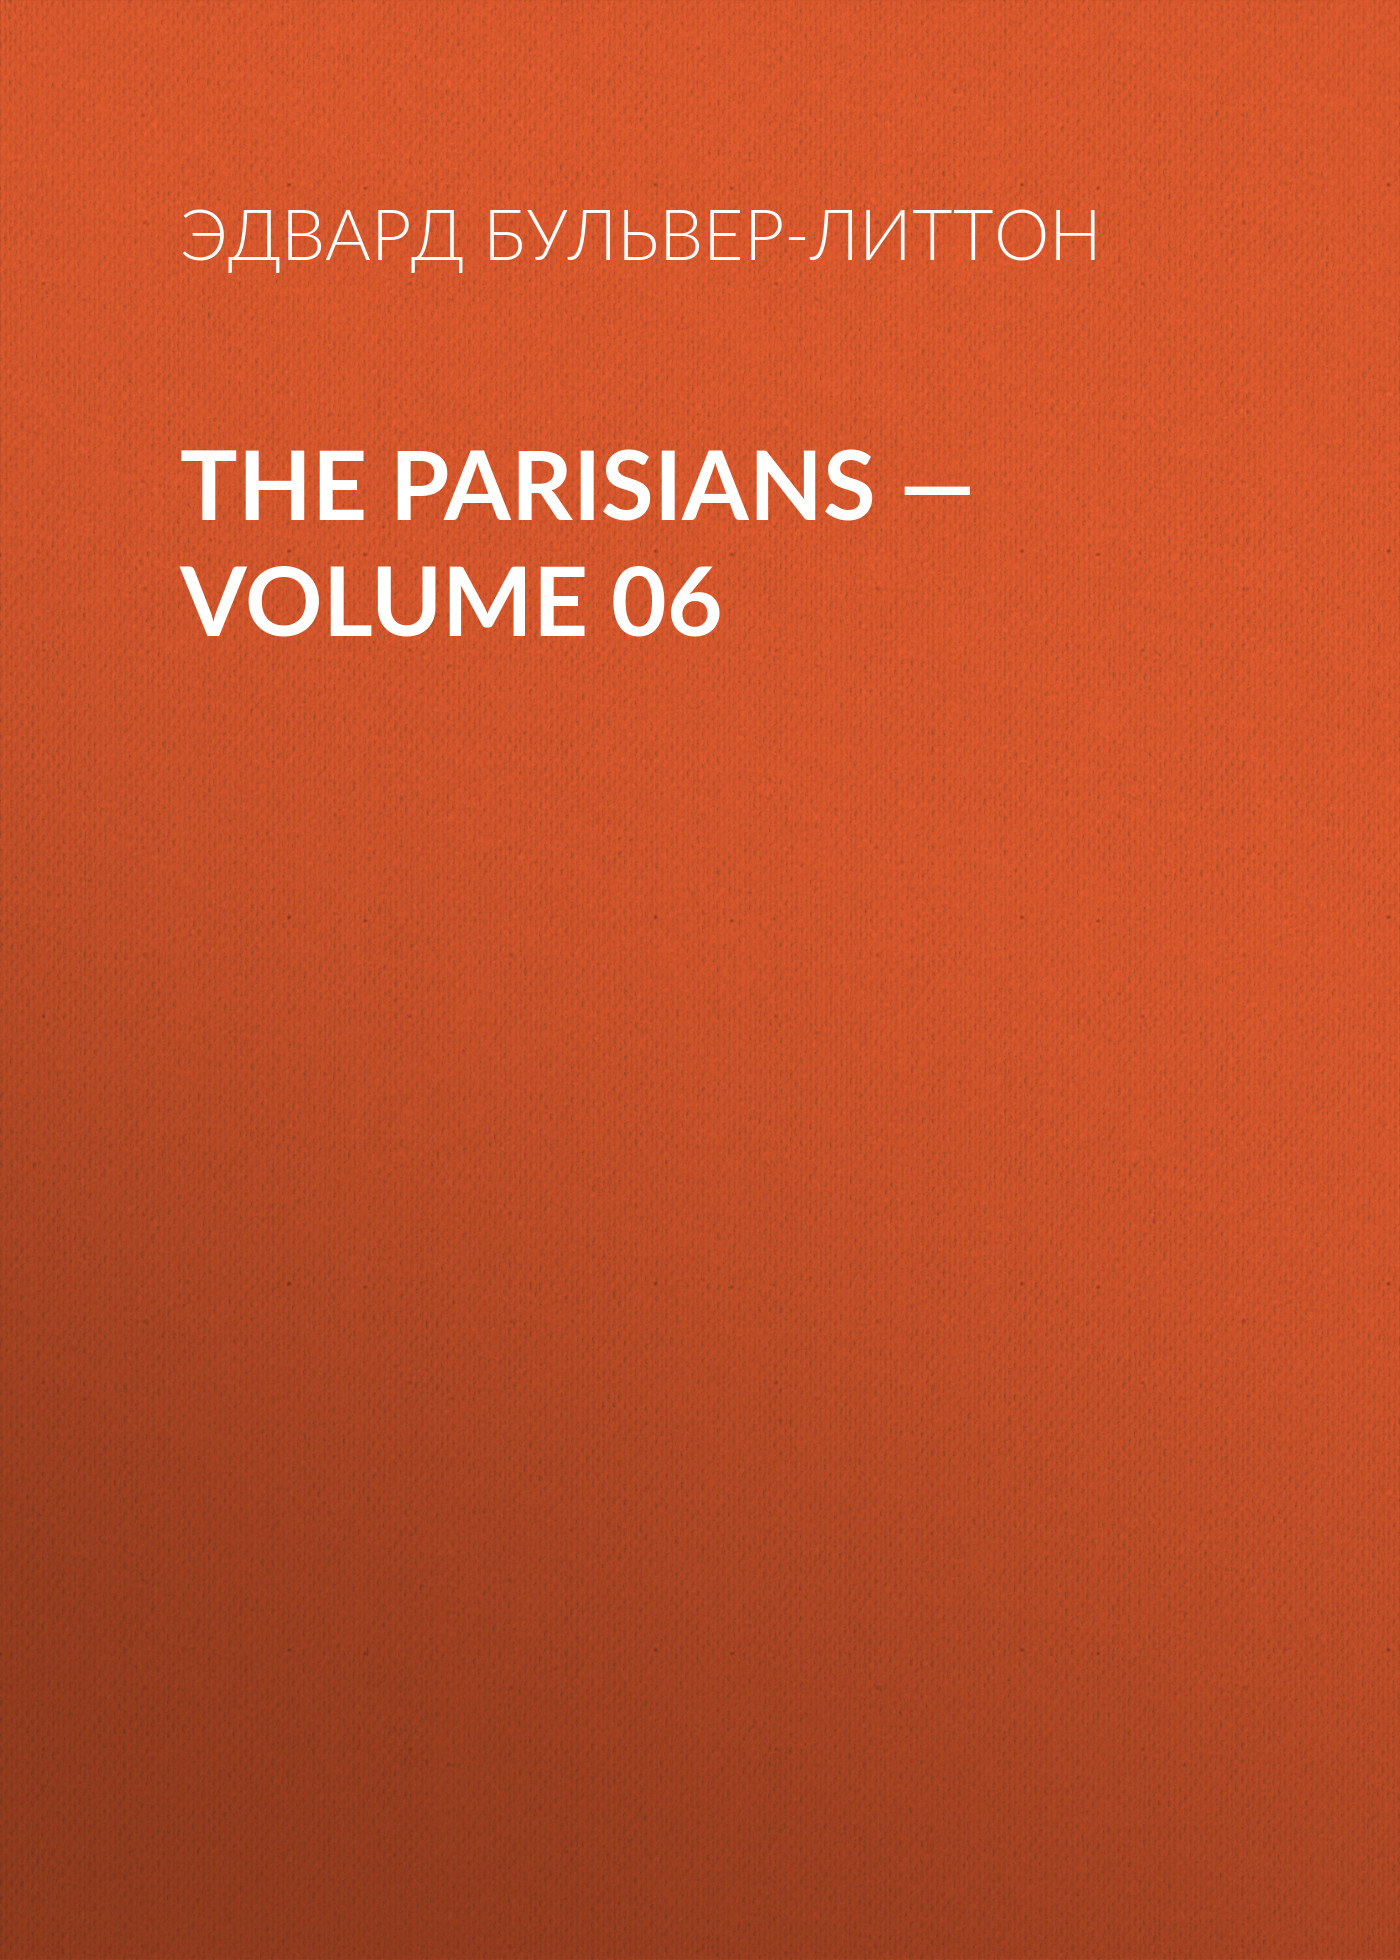 цены на Эдвард Бульвер-Литтон The Parisians — Volume 06  в интернет-магазинах